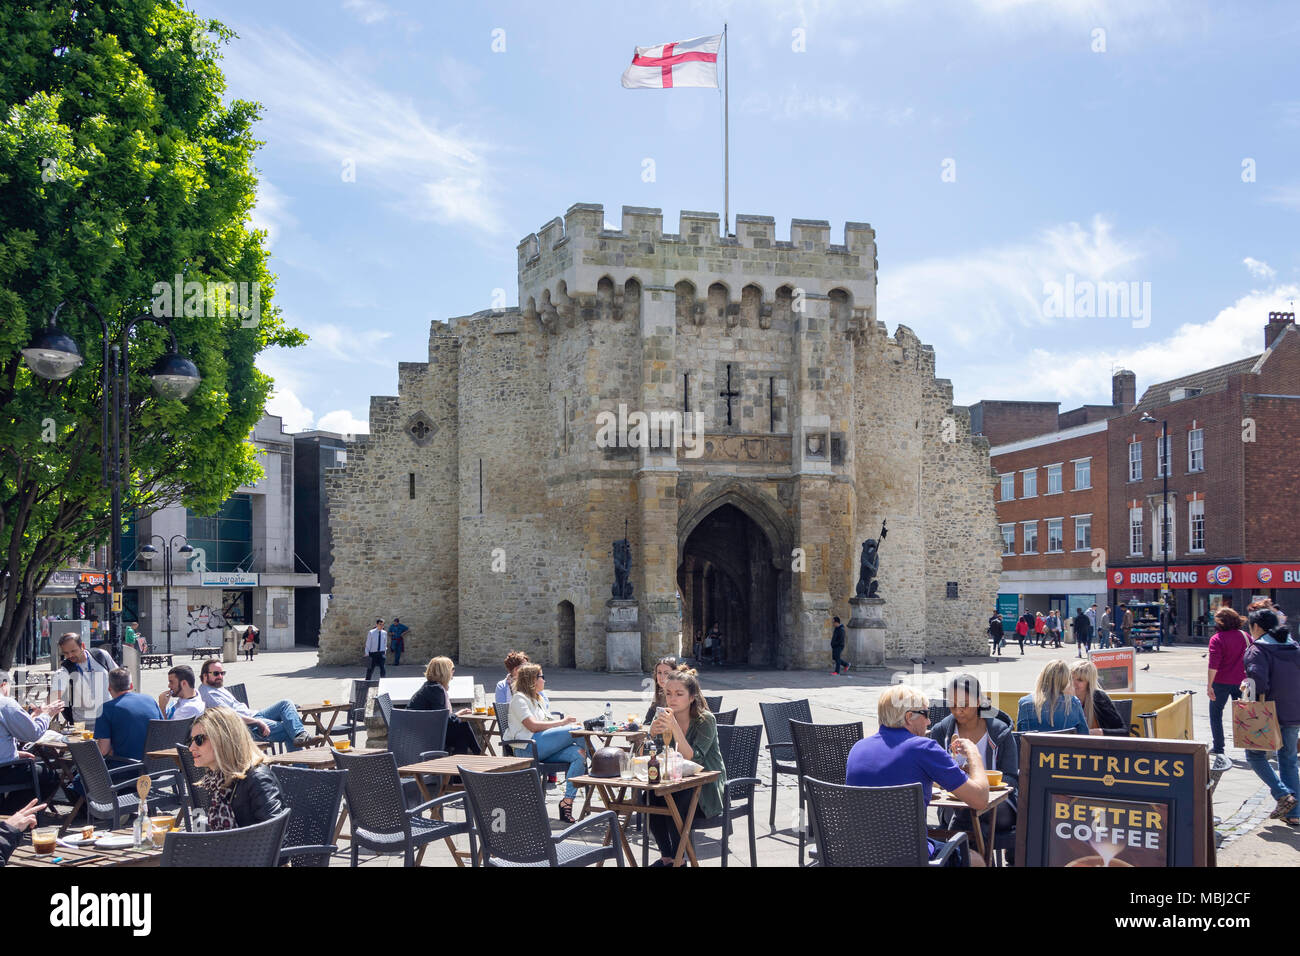 Mettricks Old Town Cafe, High Street, Old Town, Southampton, Hampshire, England, United Kingdom - Stock Image